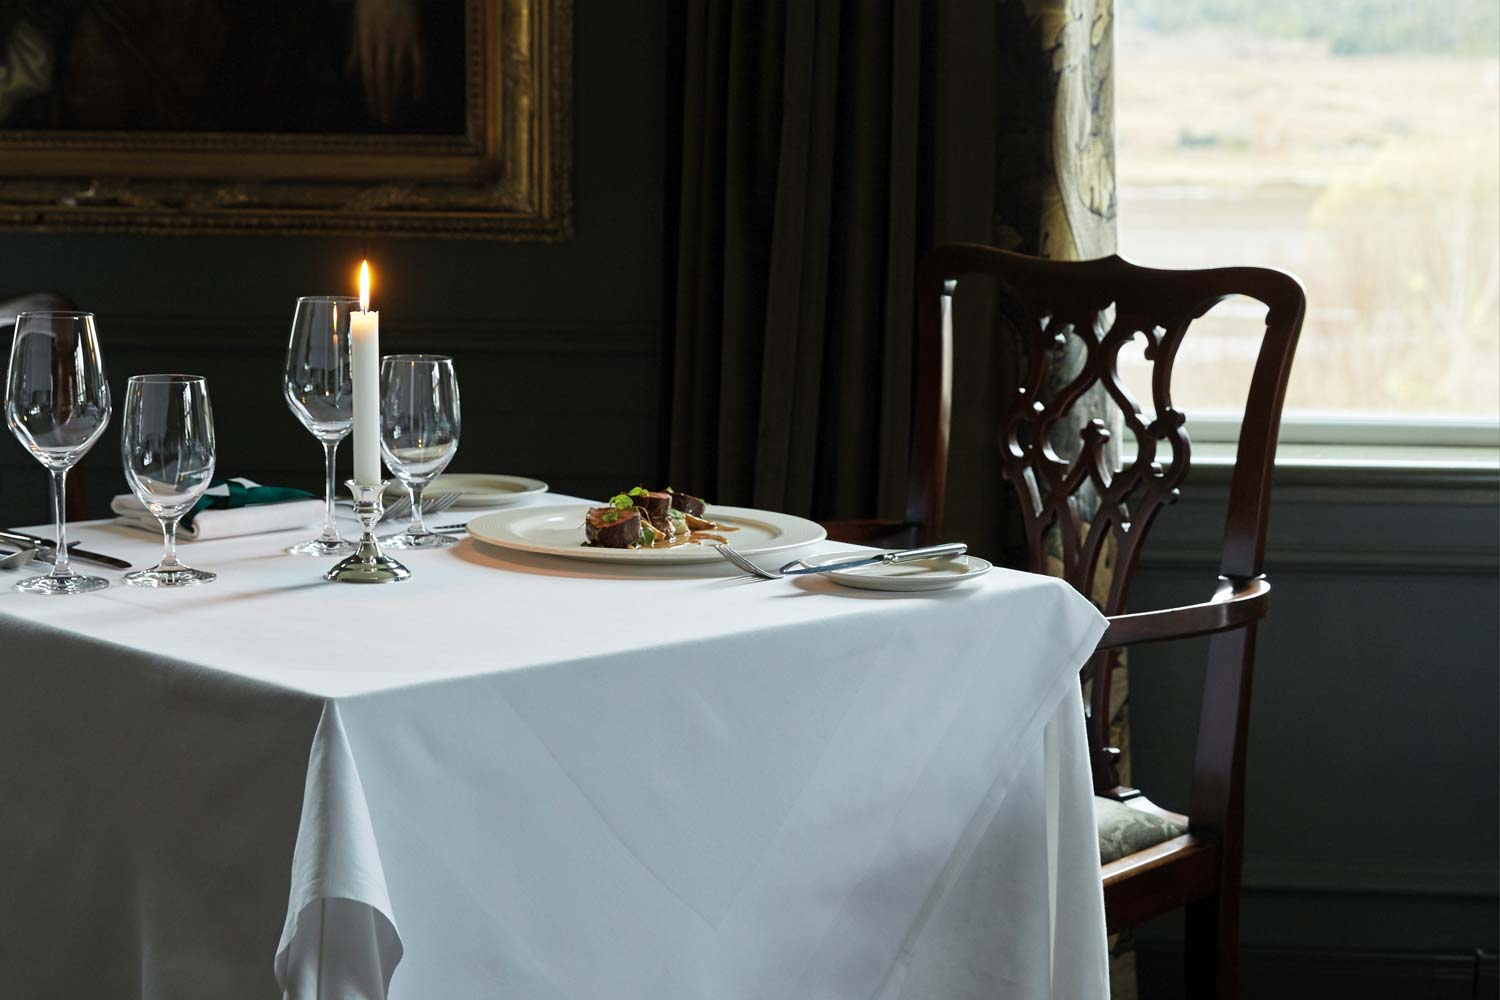 Dinner Plans: Kinloch Lodge